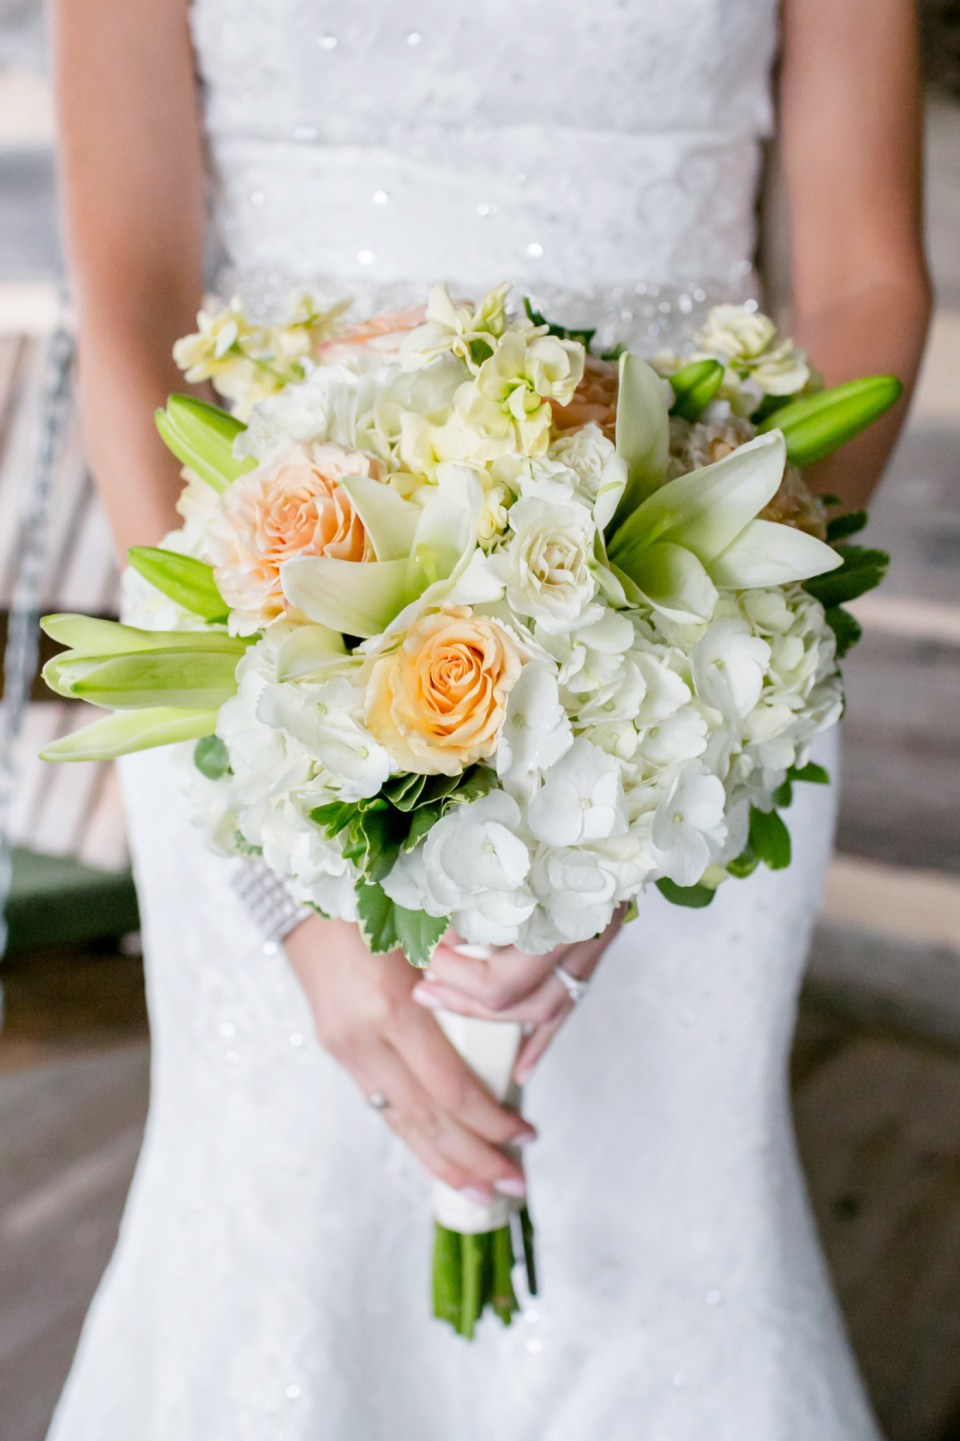 Wedding-Bouquet-Inspiration-Flowers-Bridal-Bridesmaids376